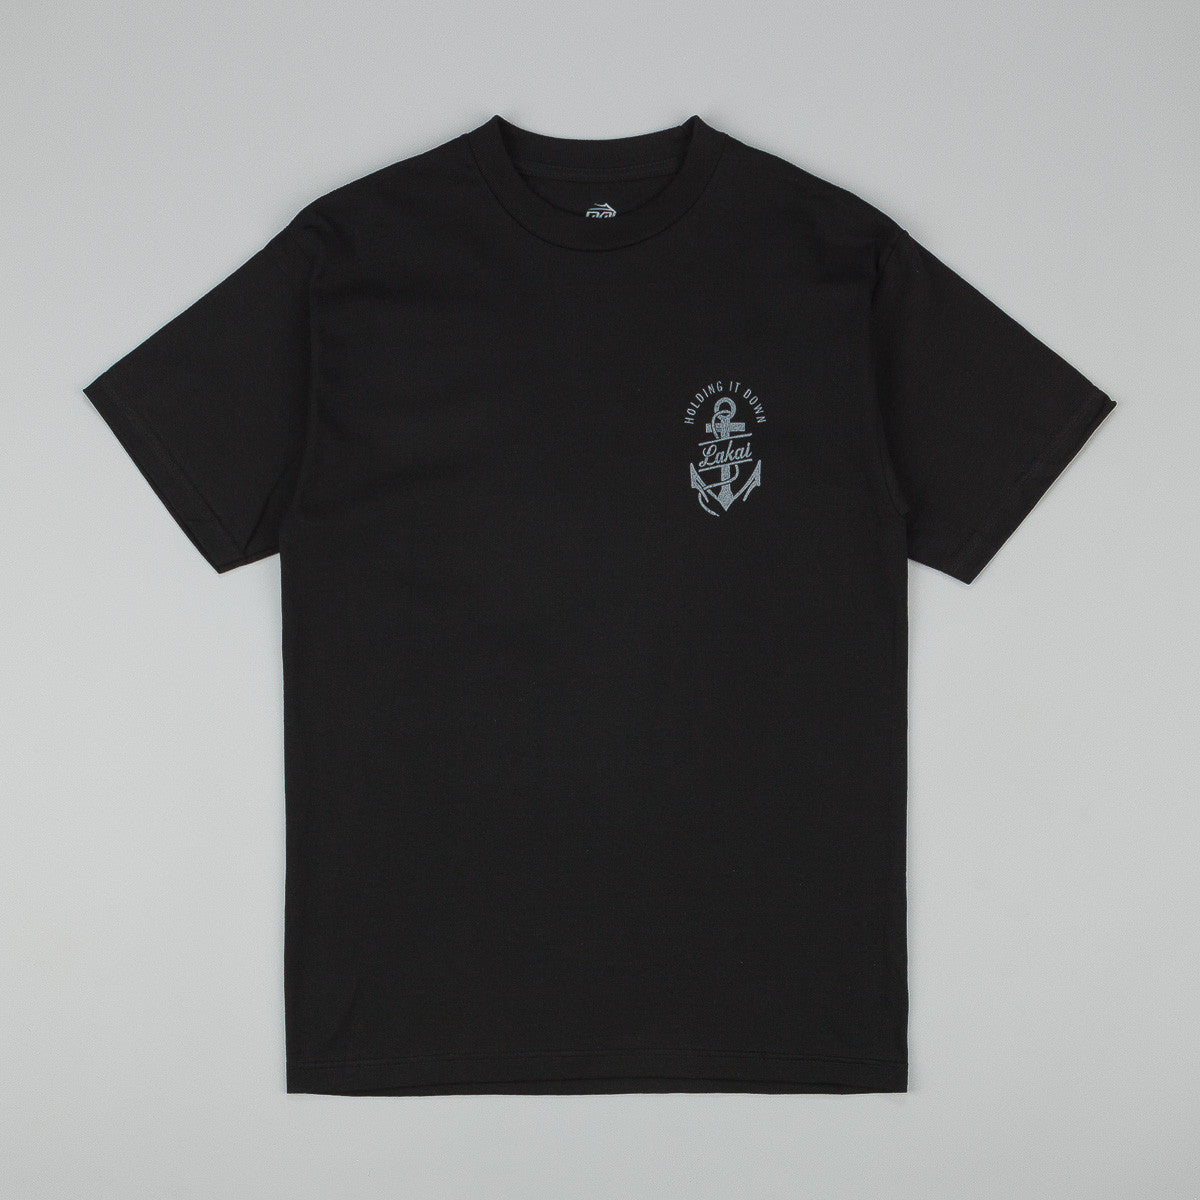 Lakai Paint T-Shirt